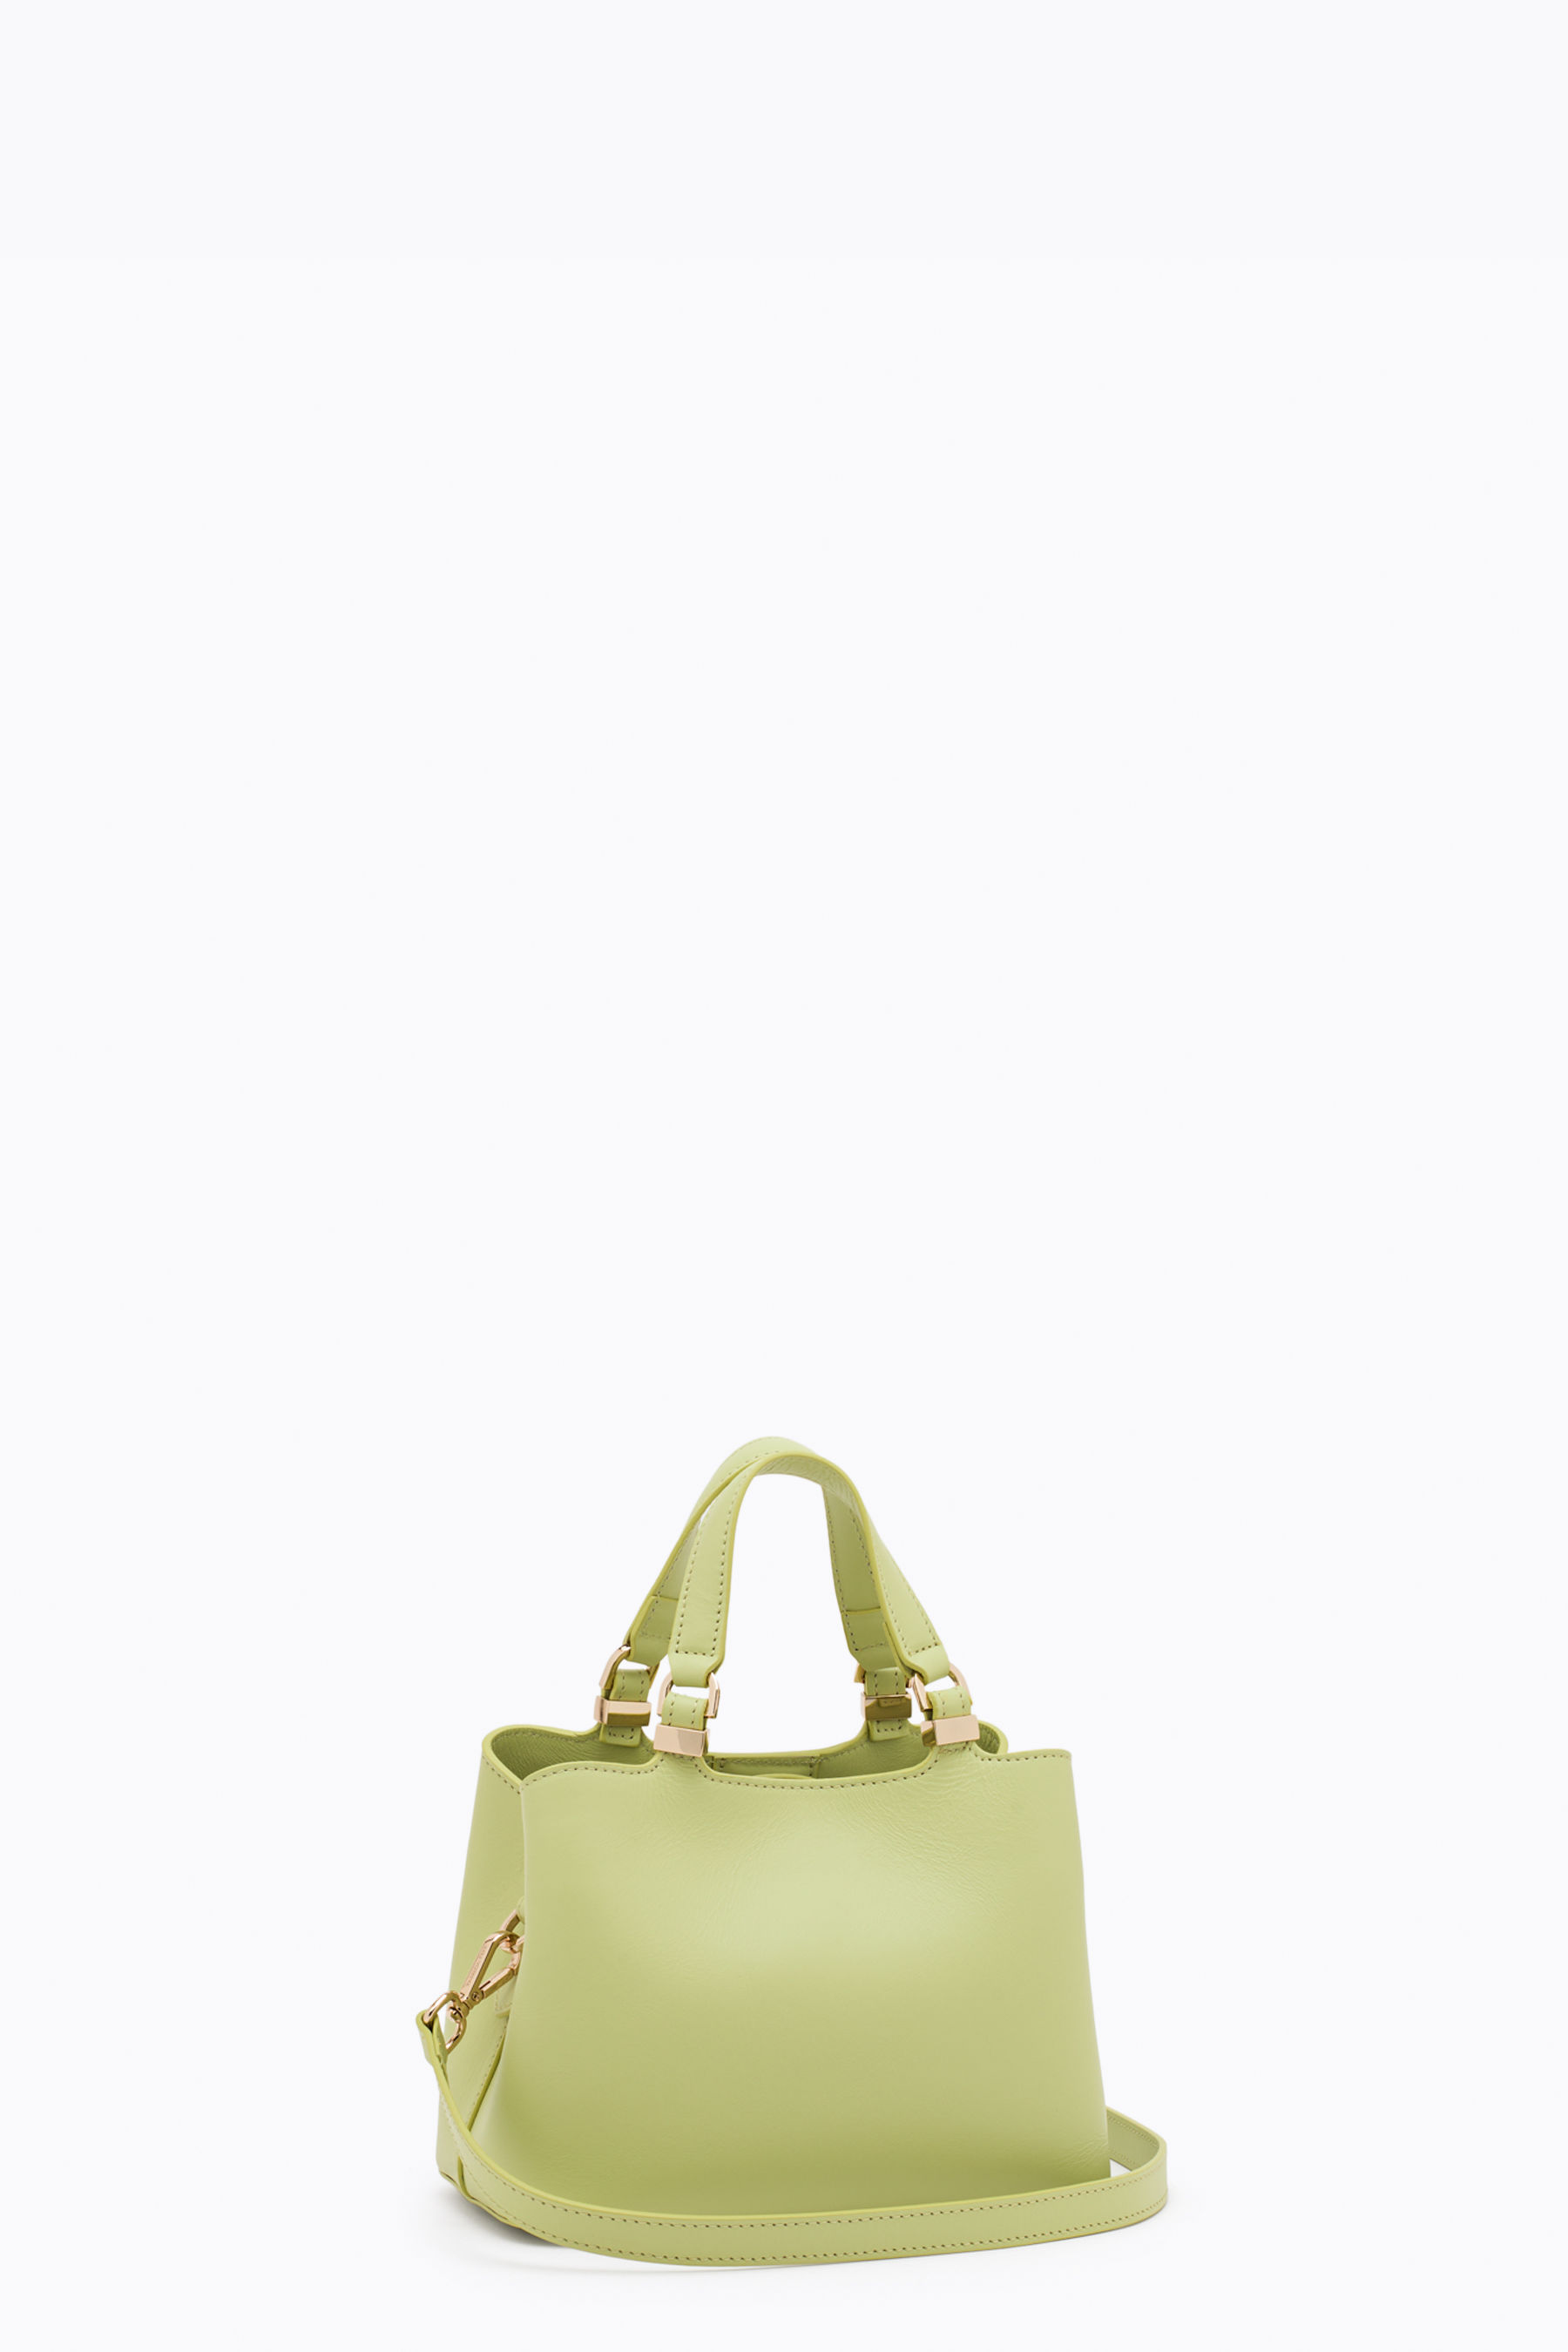 Small handbag with detachable shoulder strap